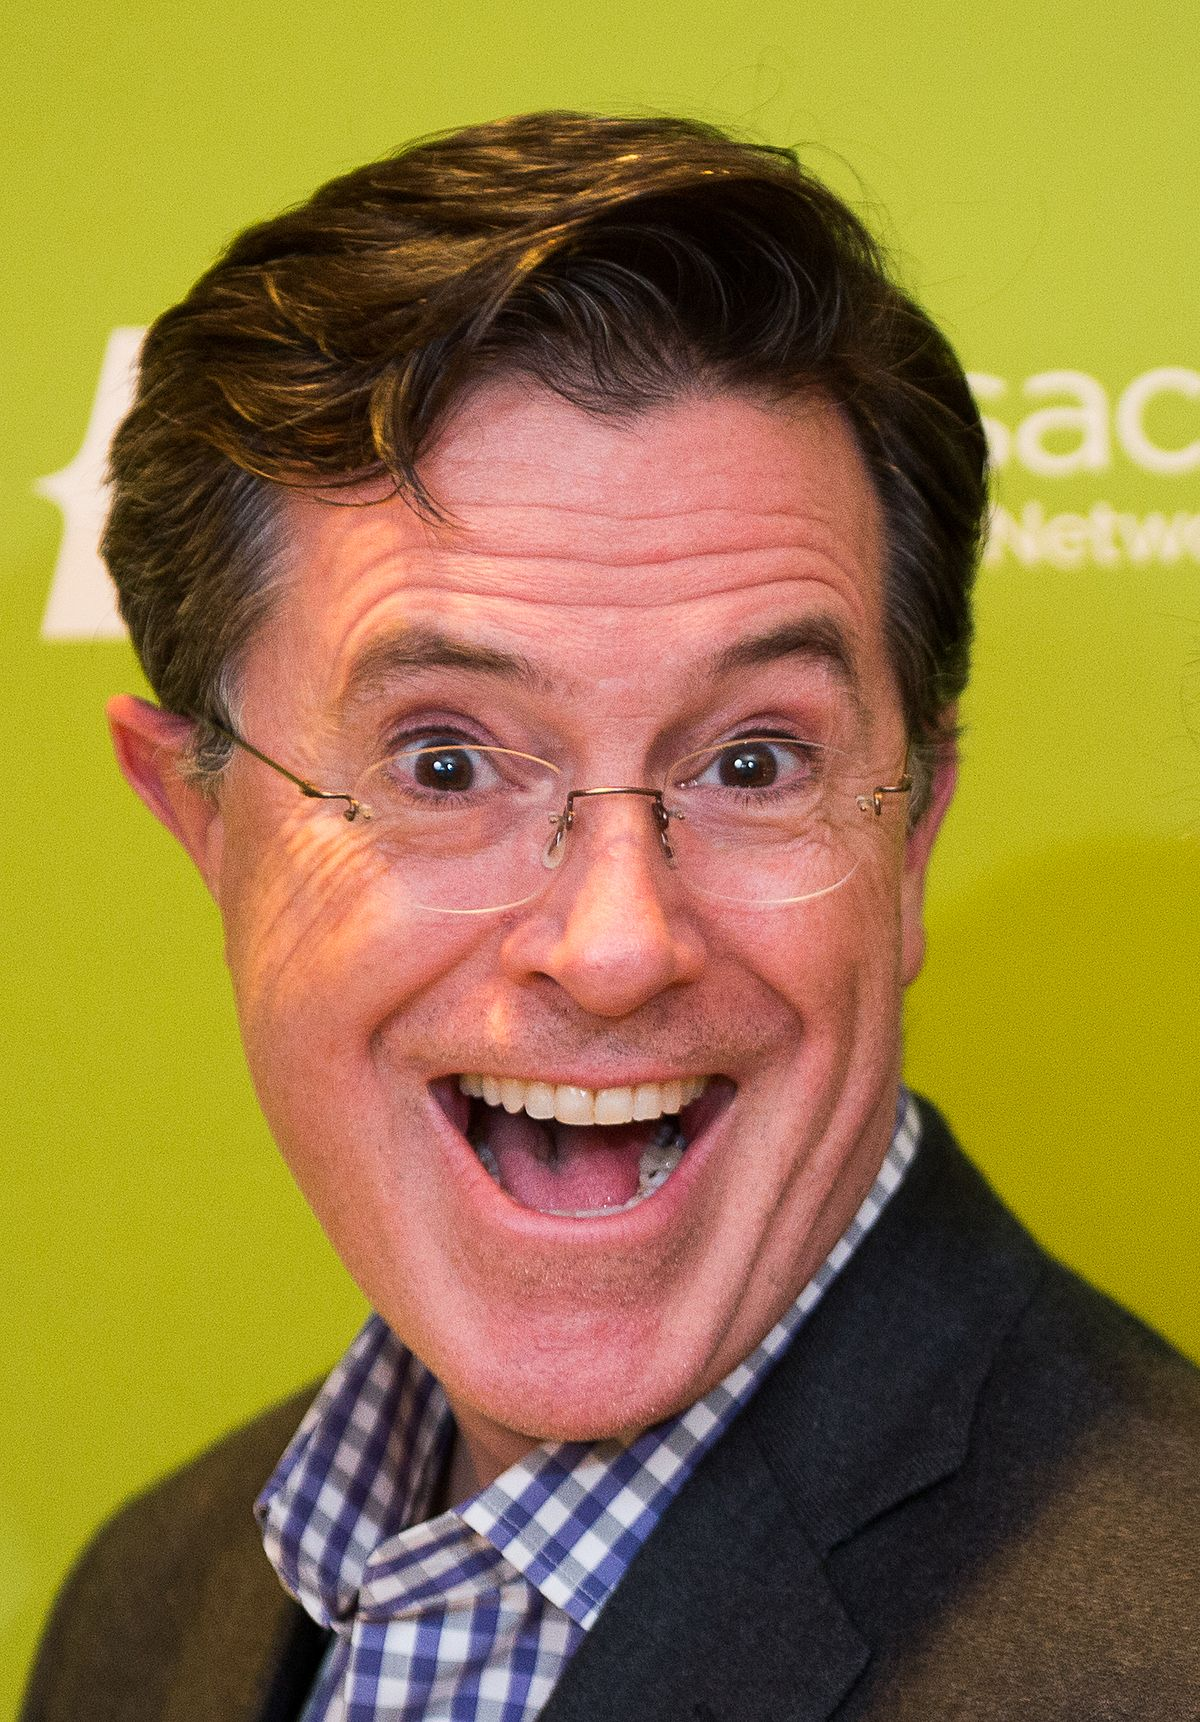 Stephen Colbert - Simple English Wikipedia, the free ... Stephen Colbert